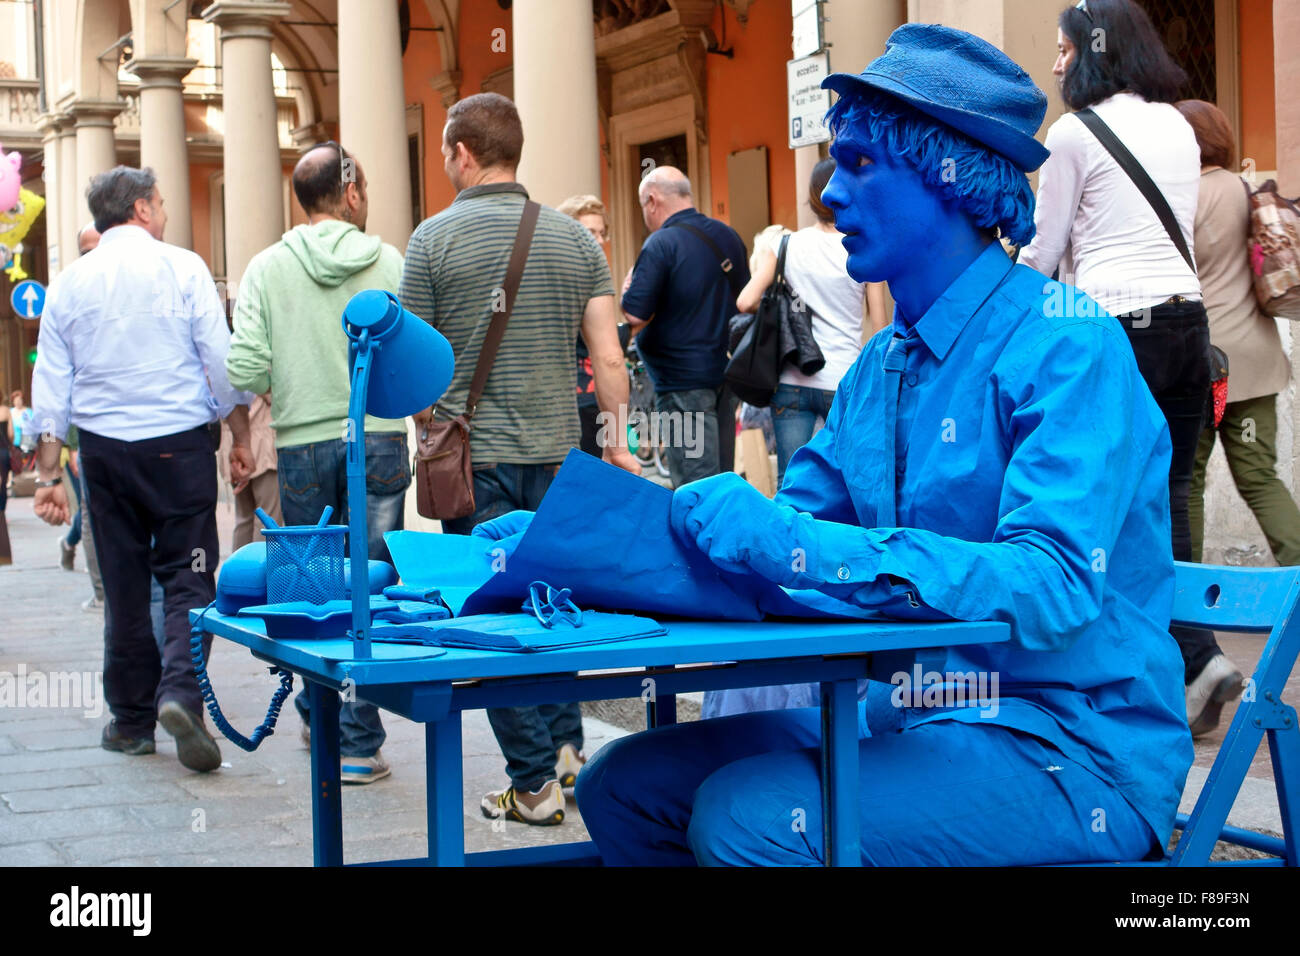 Blue painted man street performer, human statue, sitting still at a desk, on a busy street. Office in the street. - Stock Image